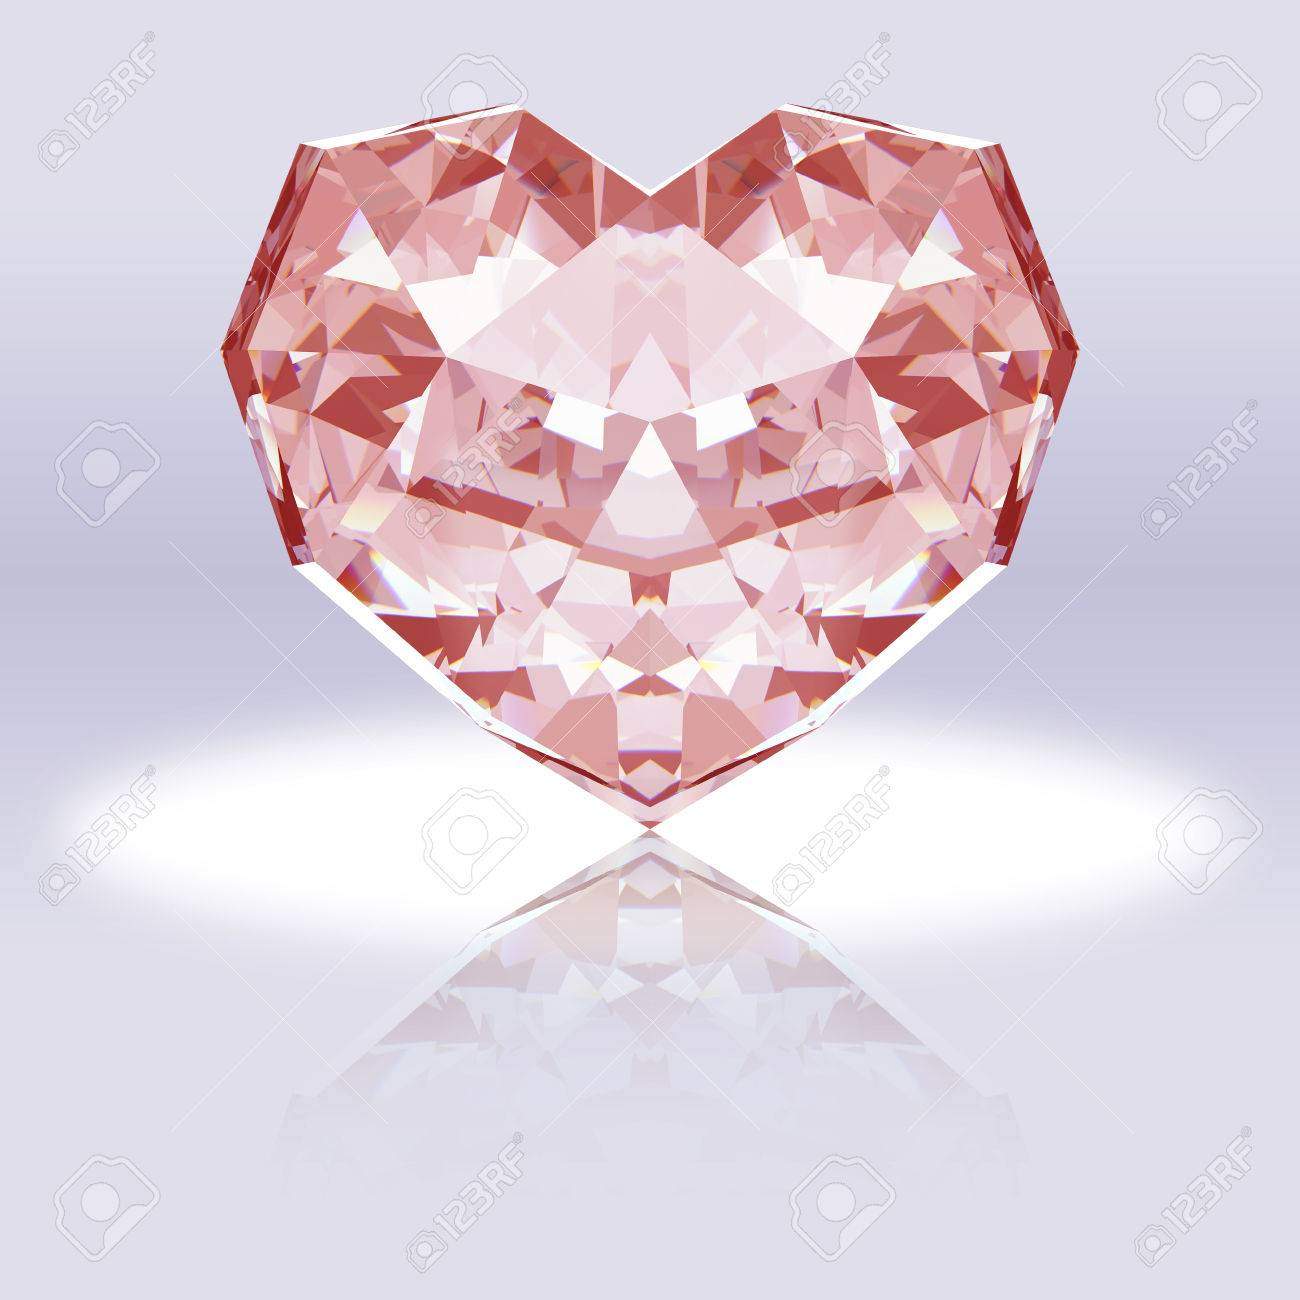 Pink Heart-shaped Diamond With Reflection. Stock Photo, Picture And ...